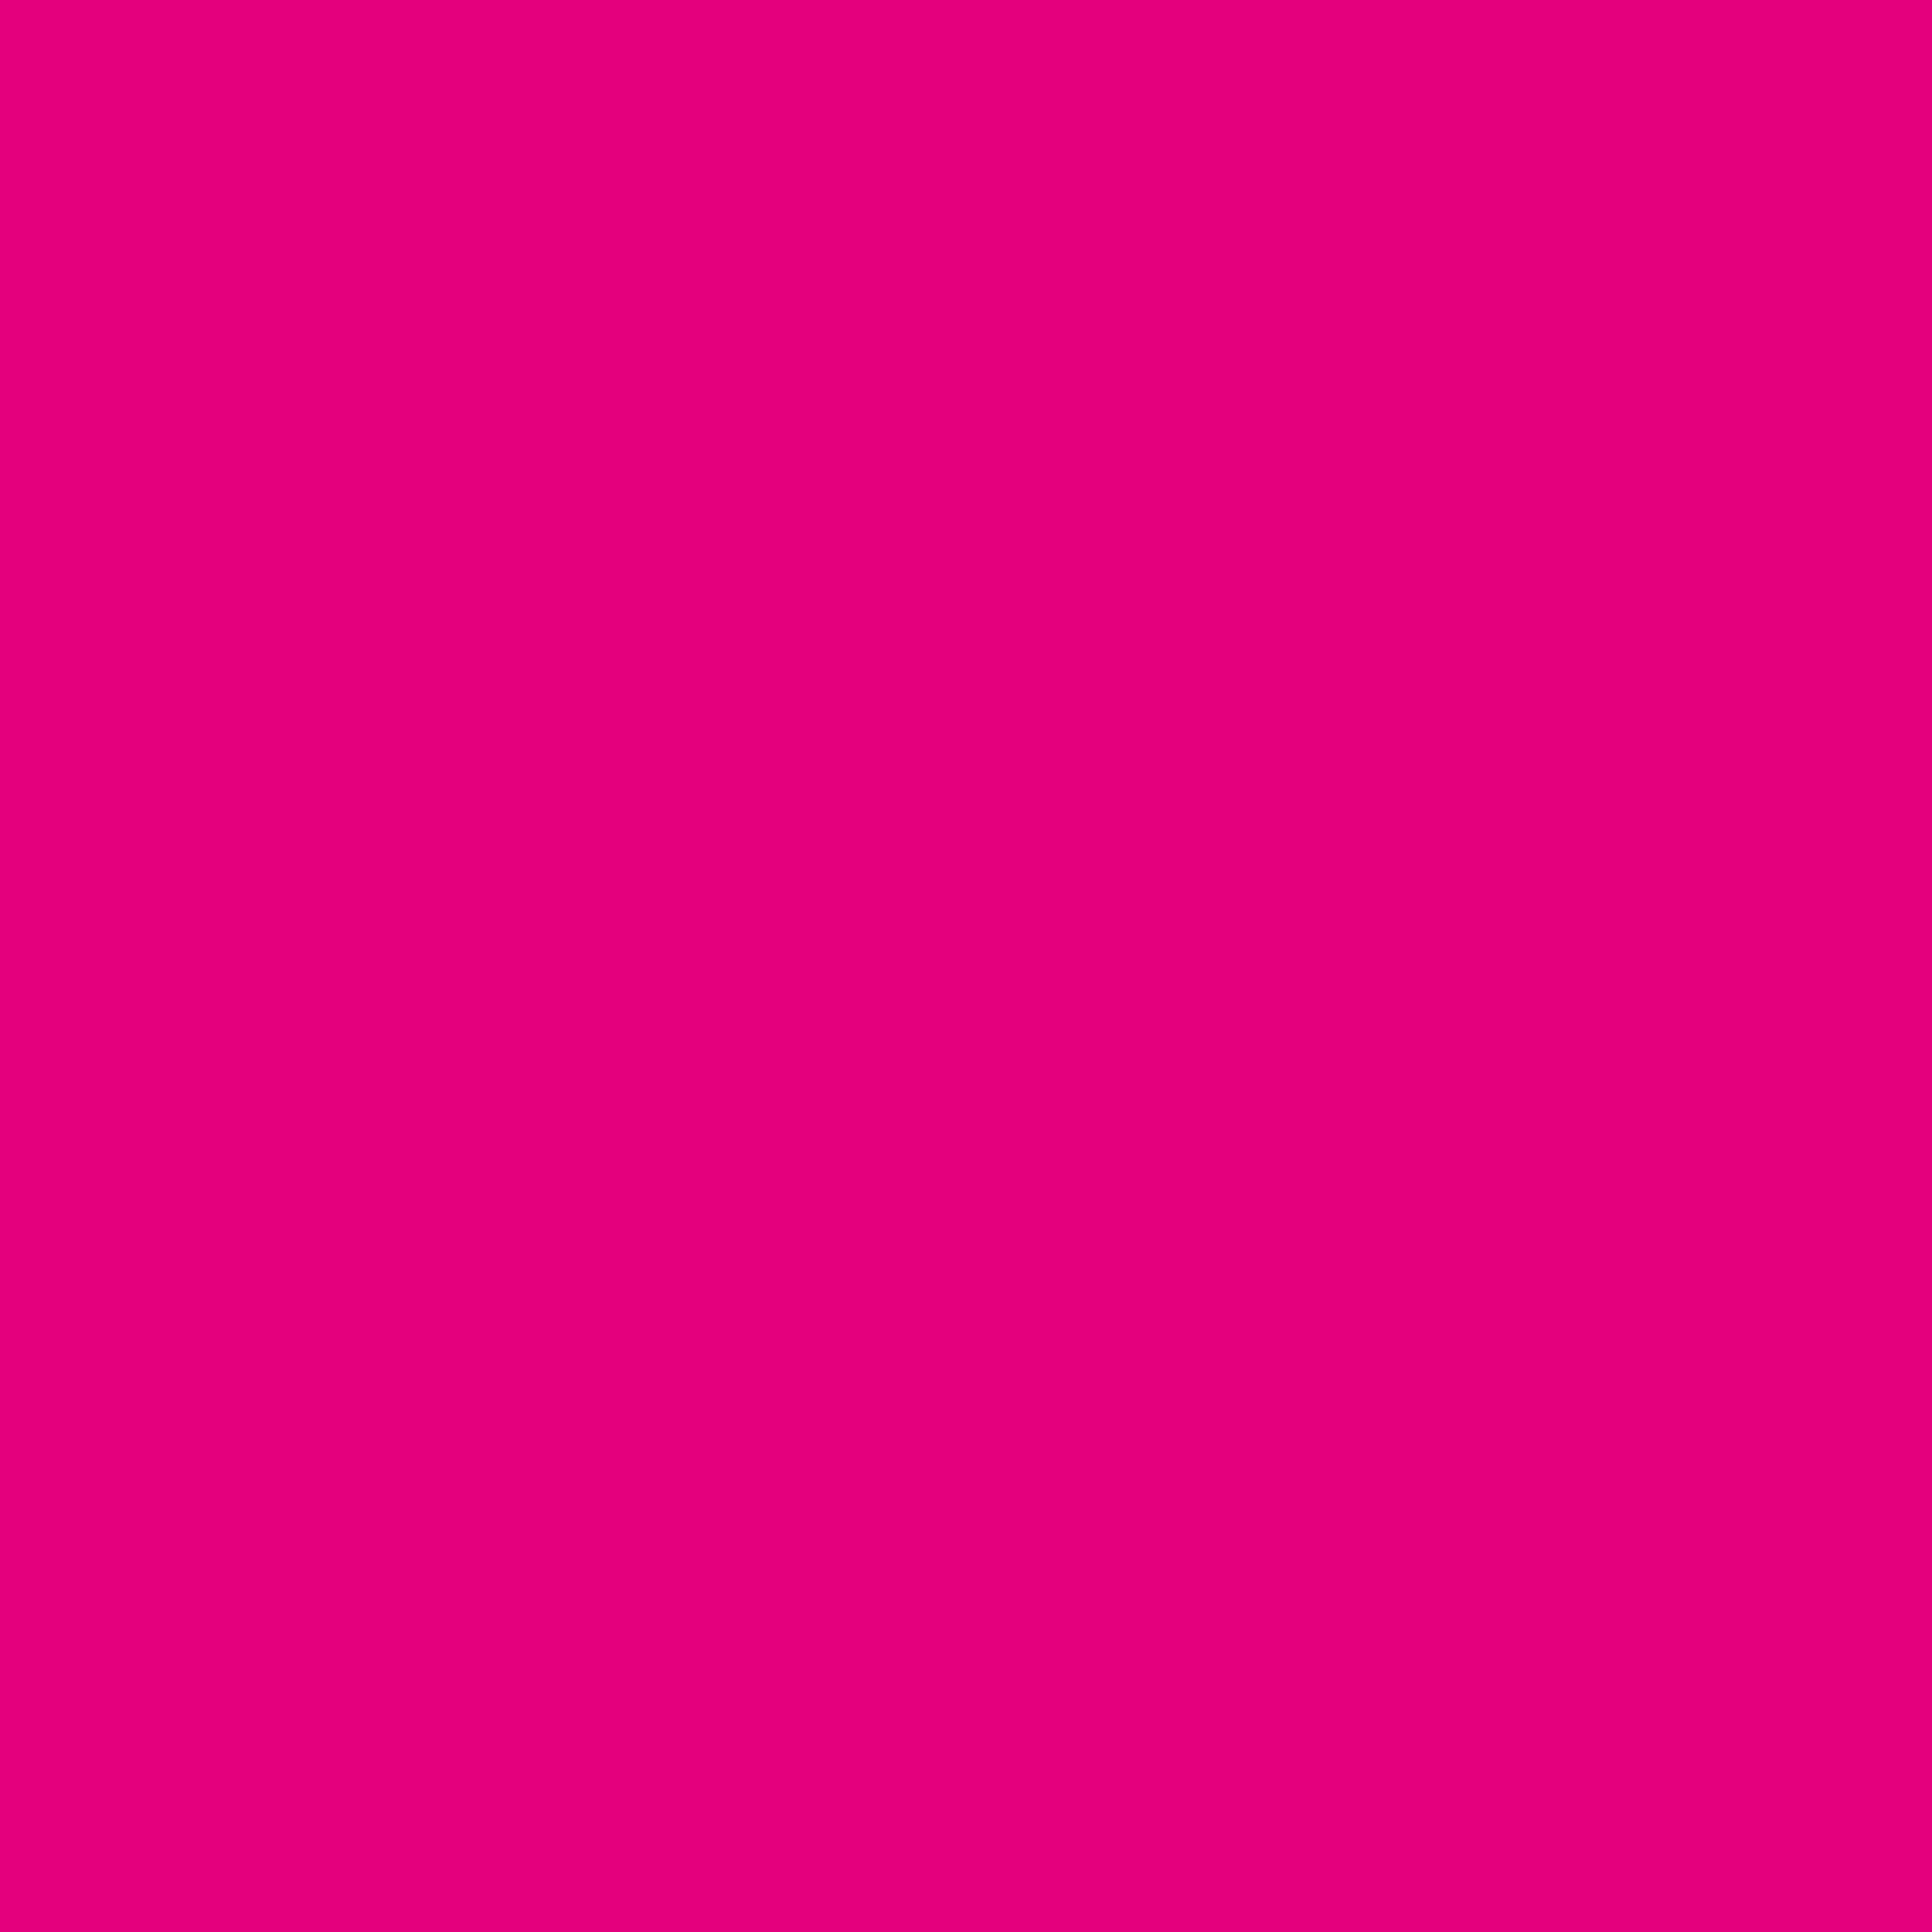 2732x2732 Mexican Pink Solid Color Background